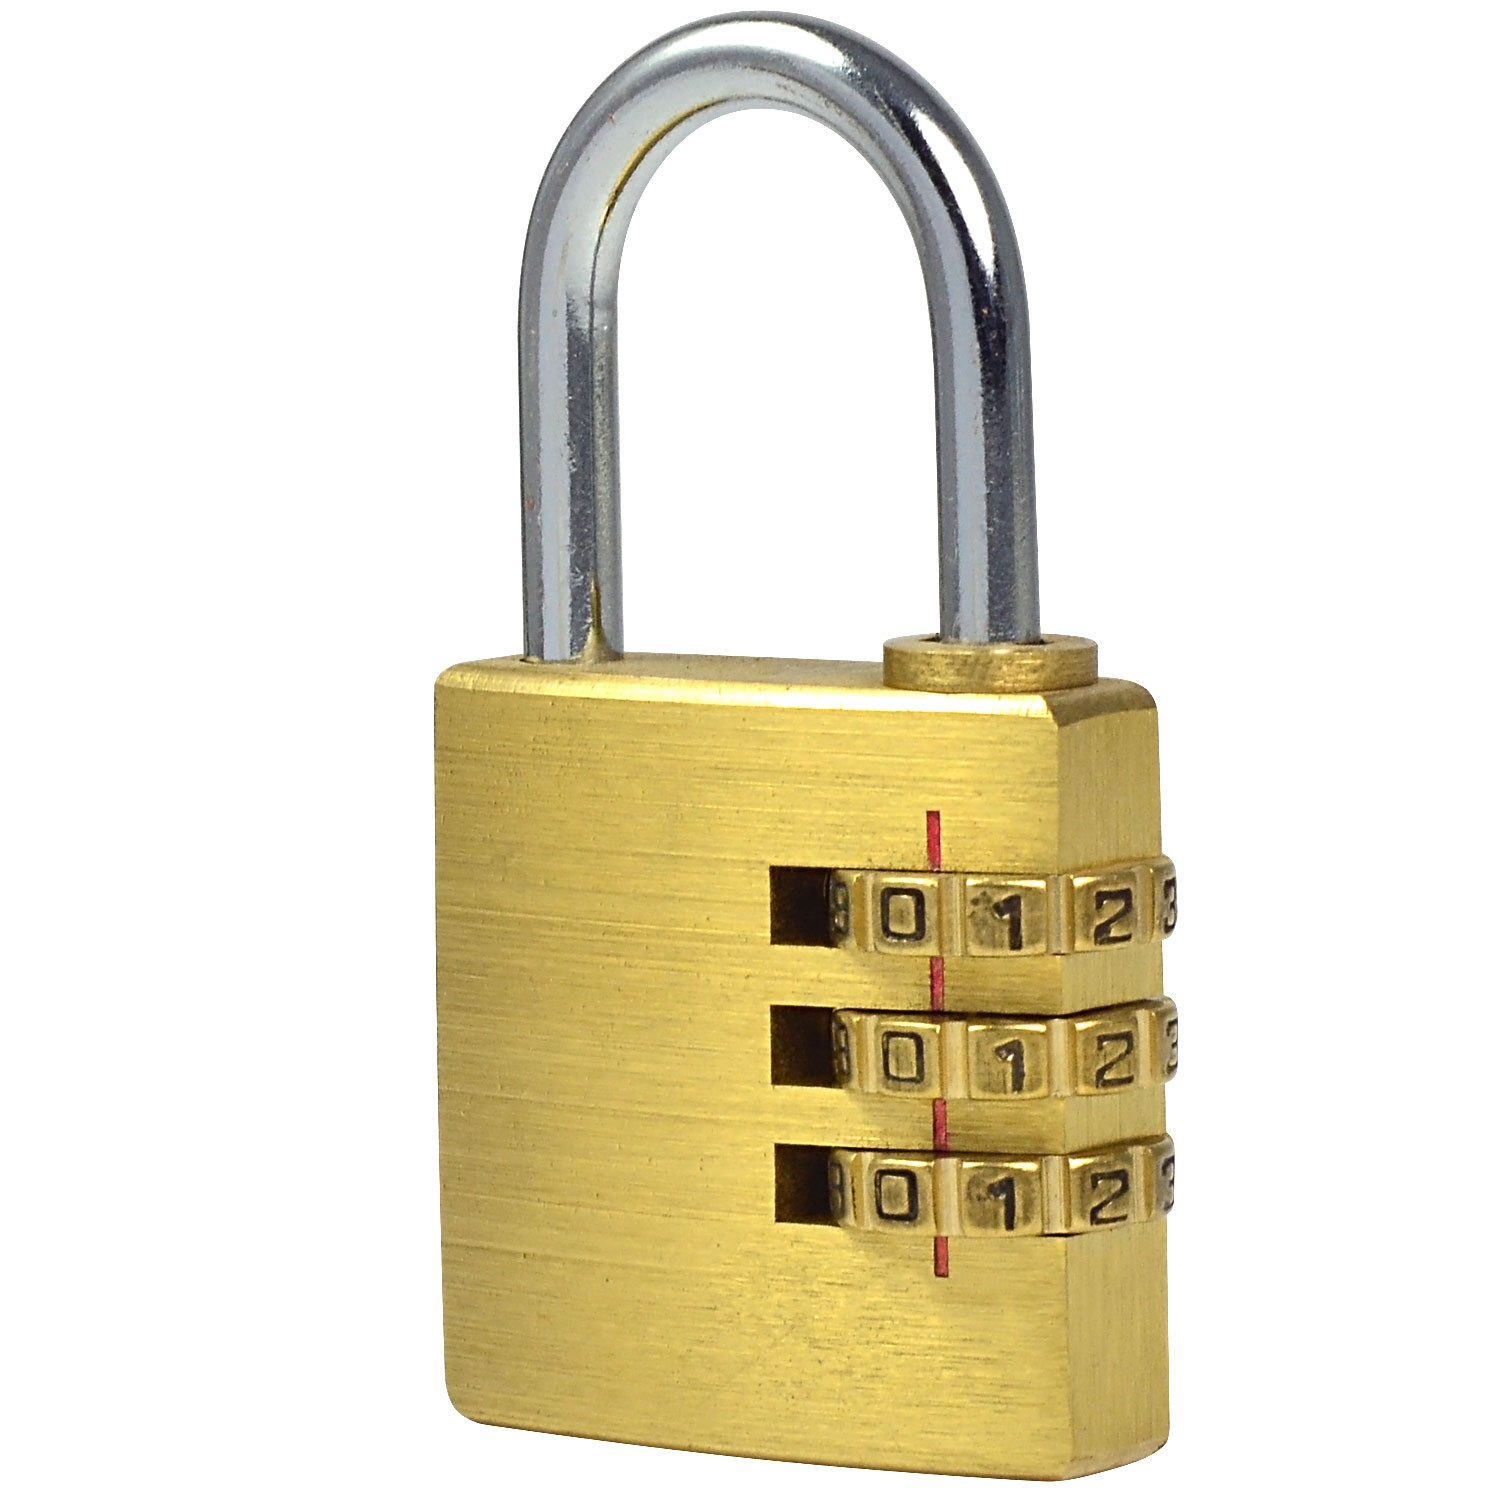 how to break a 3 number combination lock